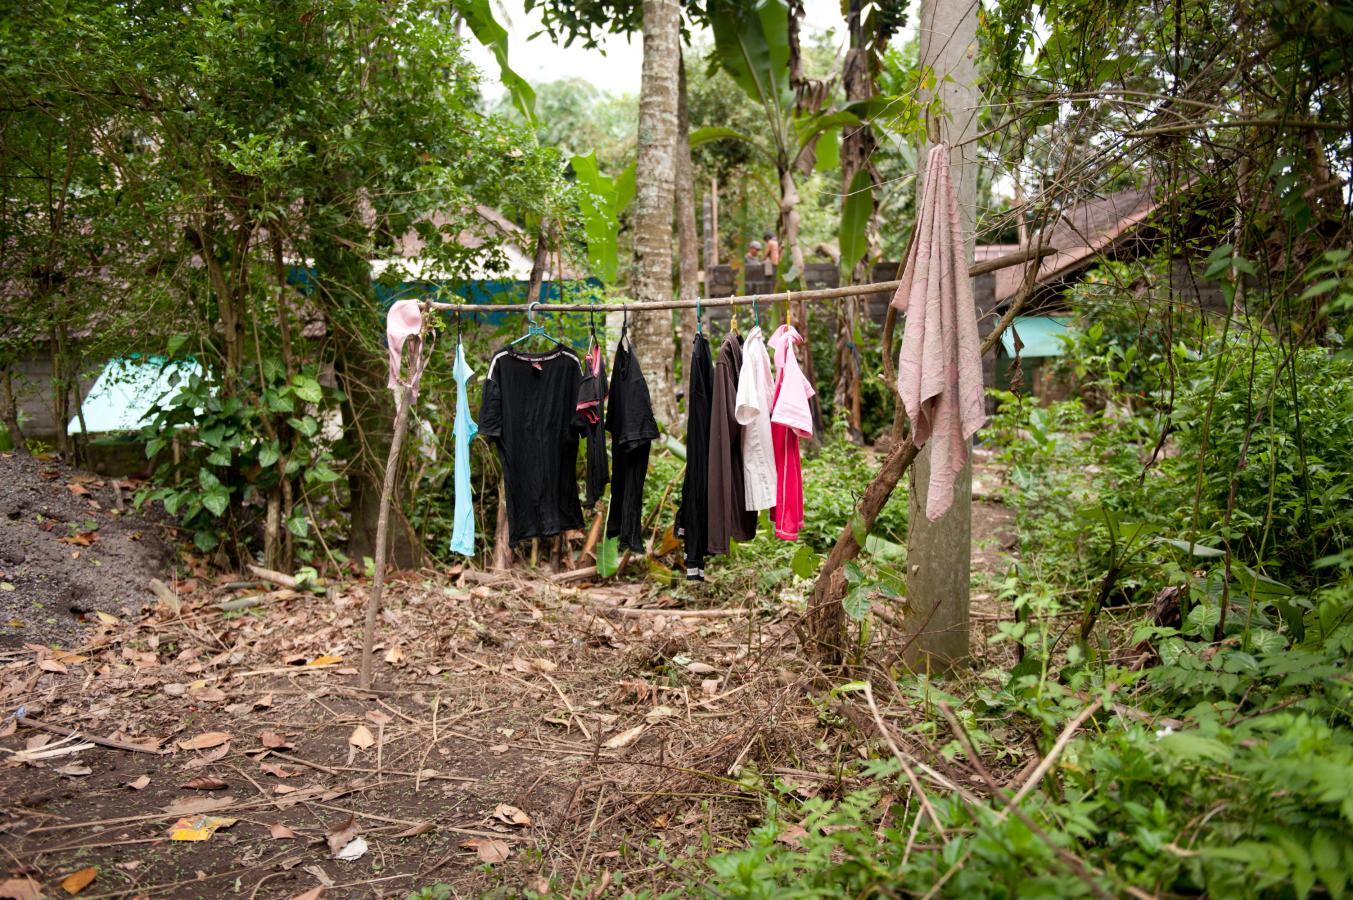 laundry-day-somewhere-around-sidemen-bali-2010